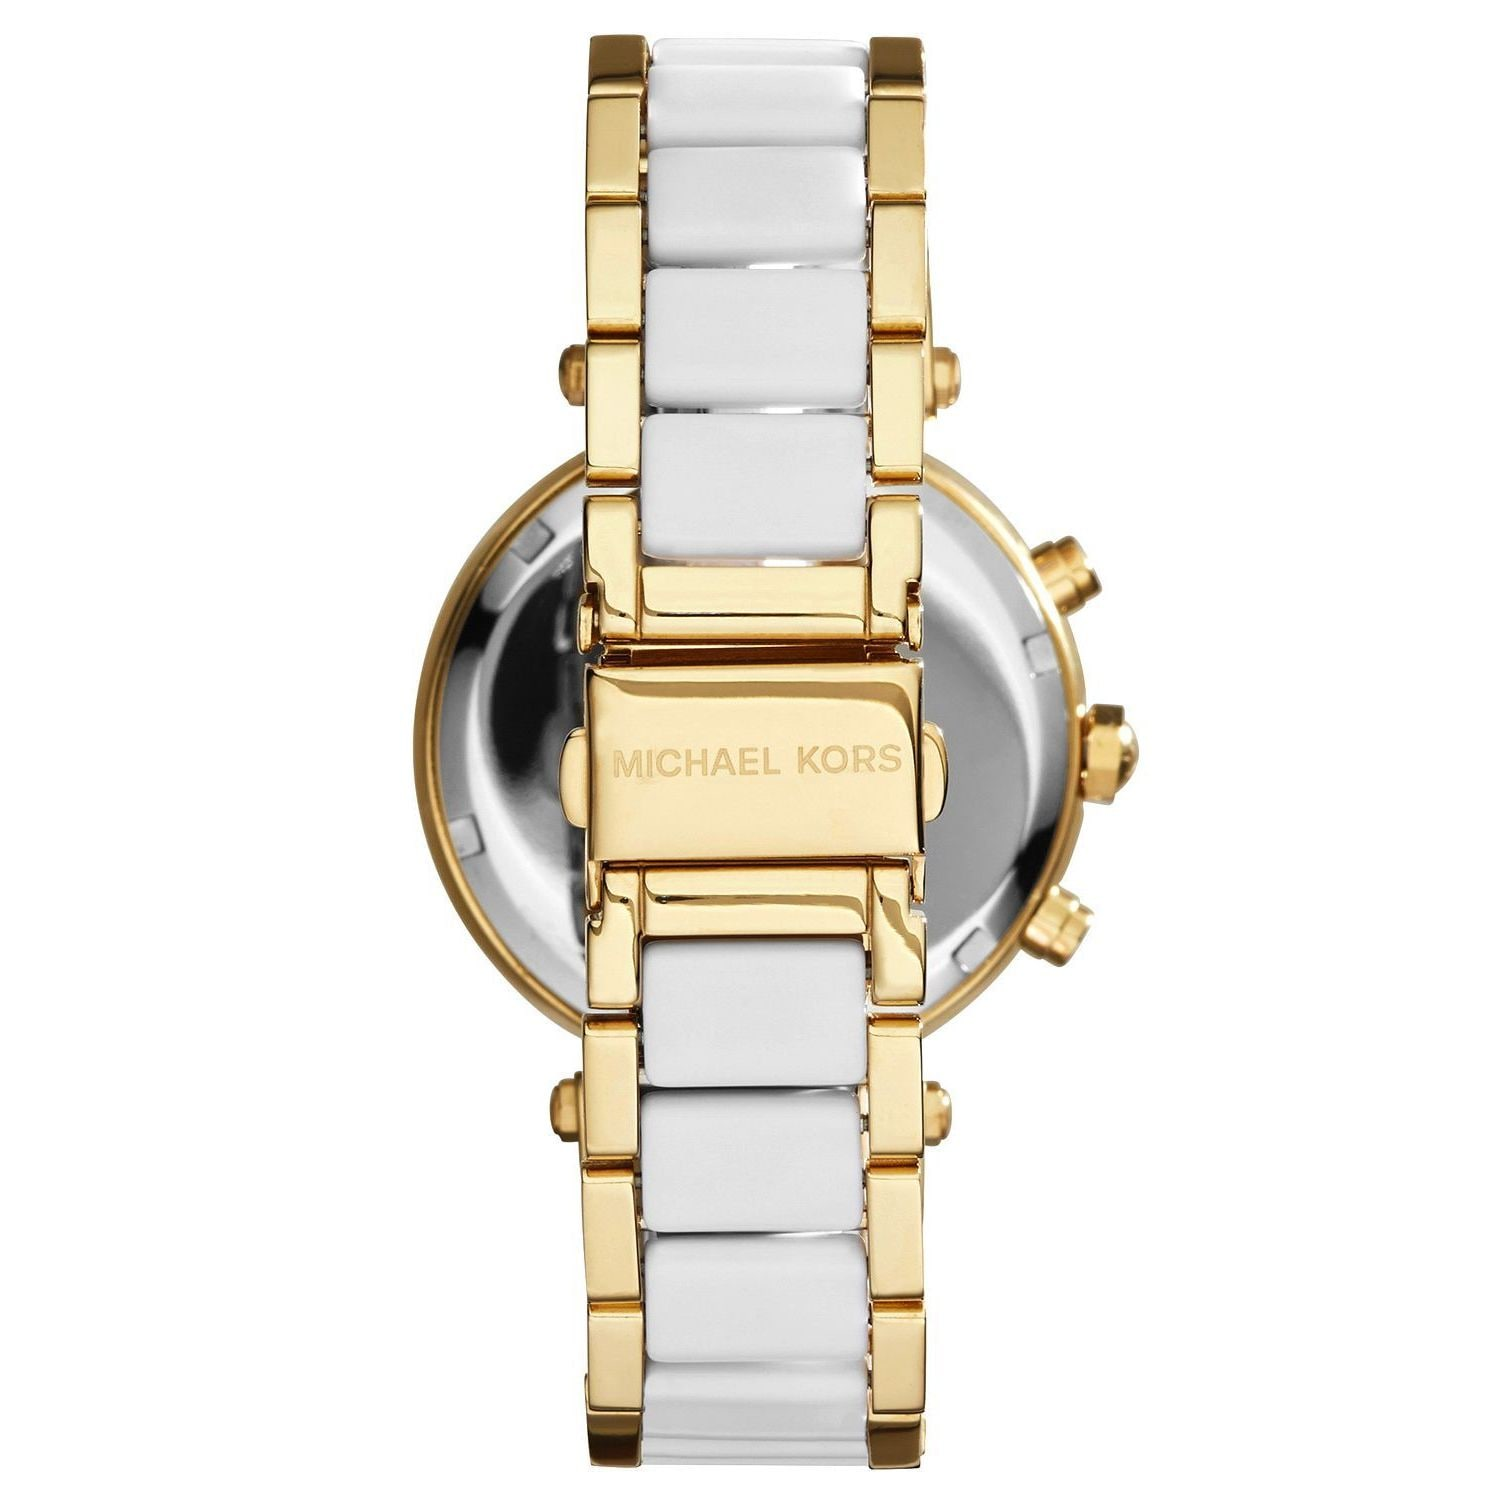 f730a282b59c Shop Michael Kors Women s MK6119  Parker  Chronograph Two tone Stainless  Steel Watch - Free Shipping Today - Overstock - 10013142